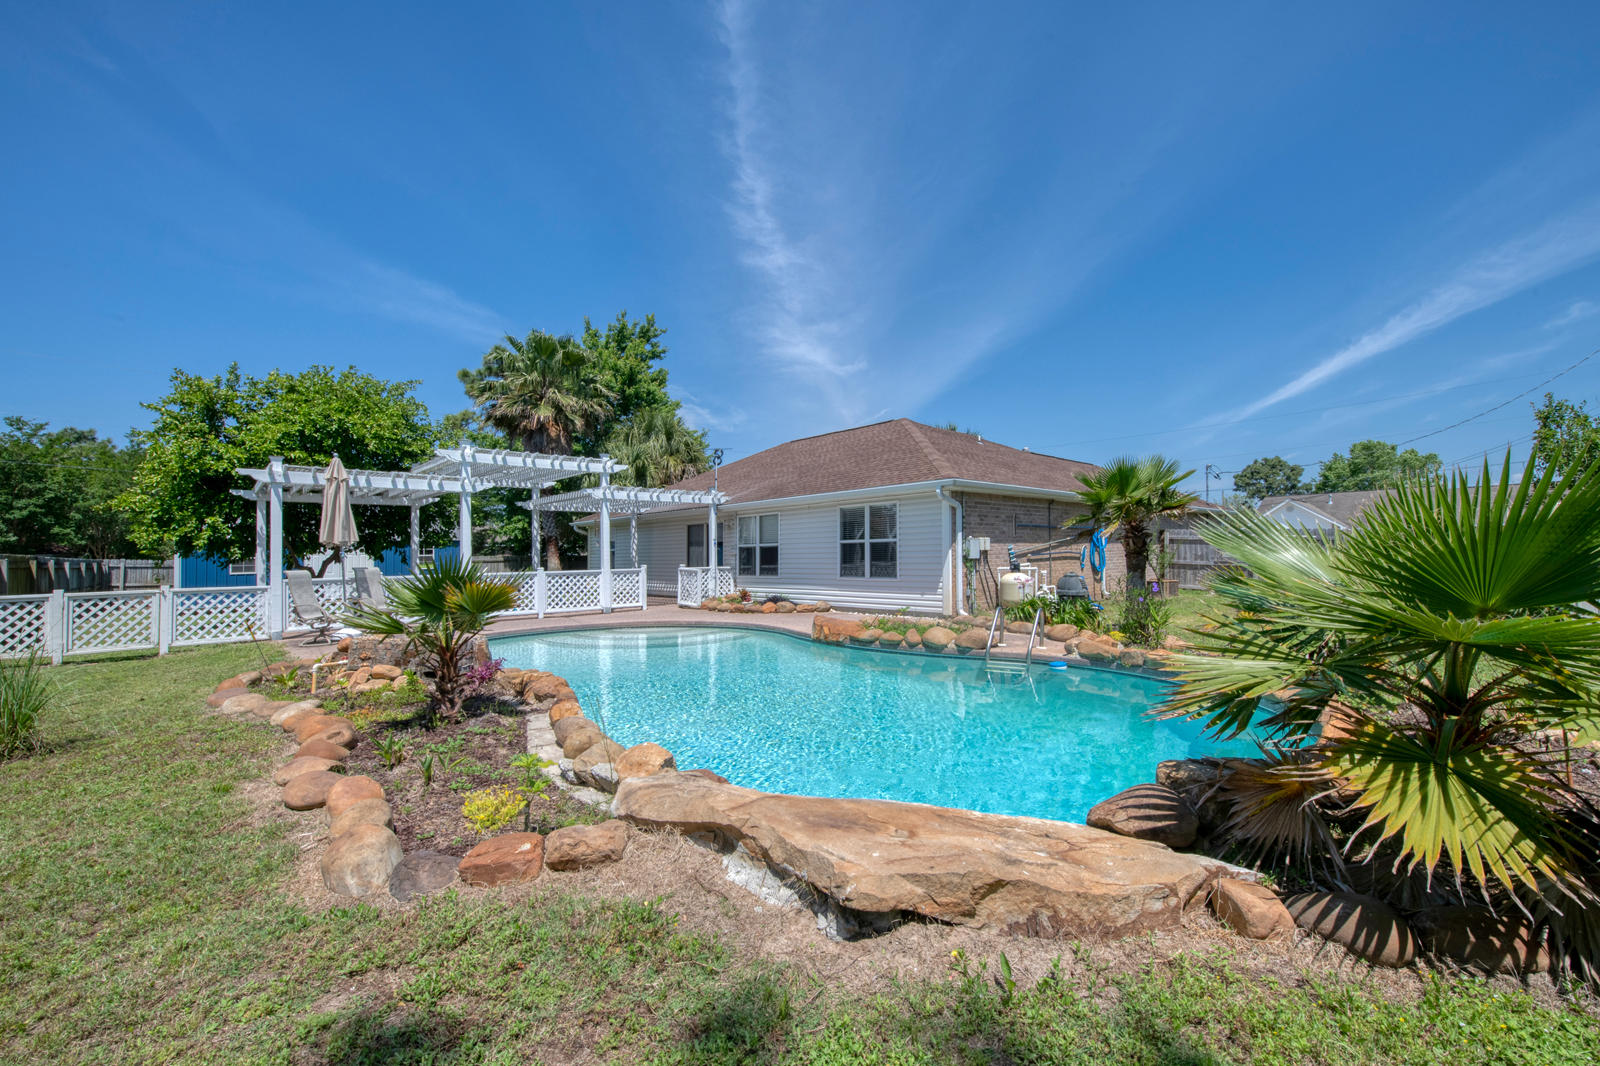 Photo of home for sale at 8305 Onich, Navarre FL